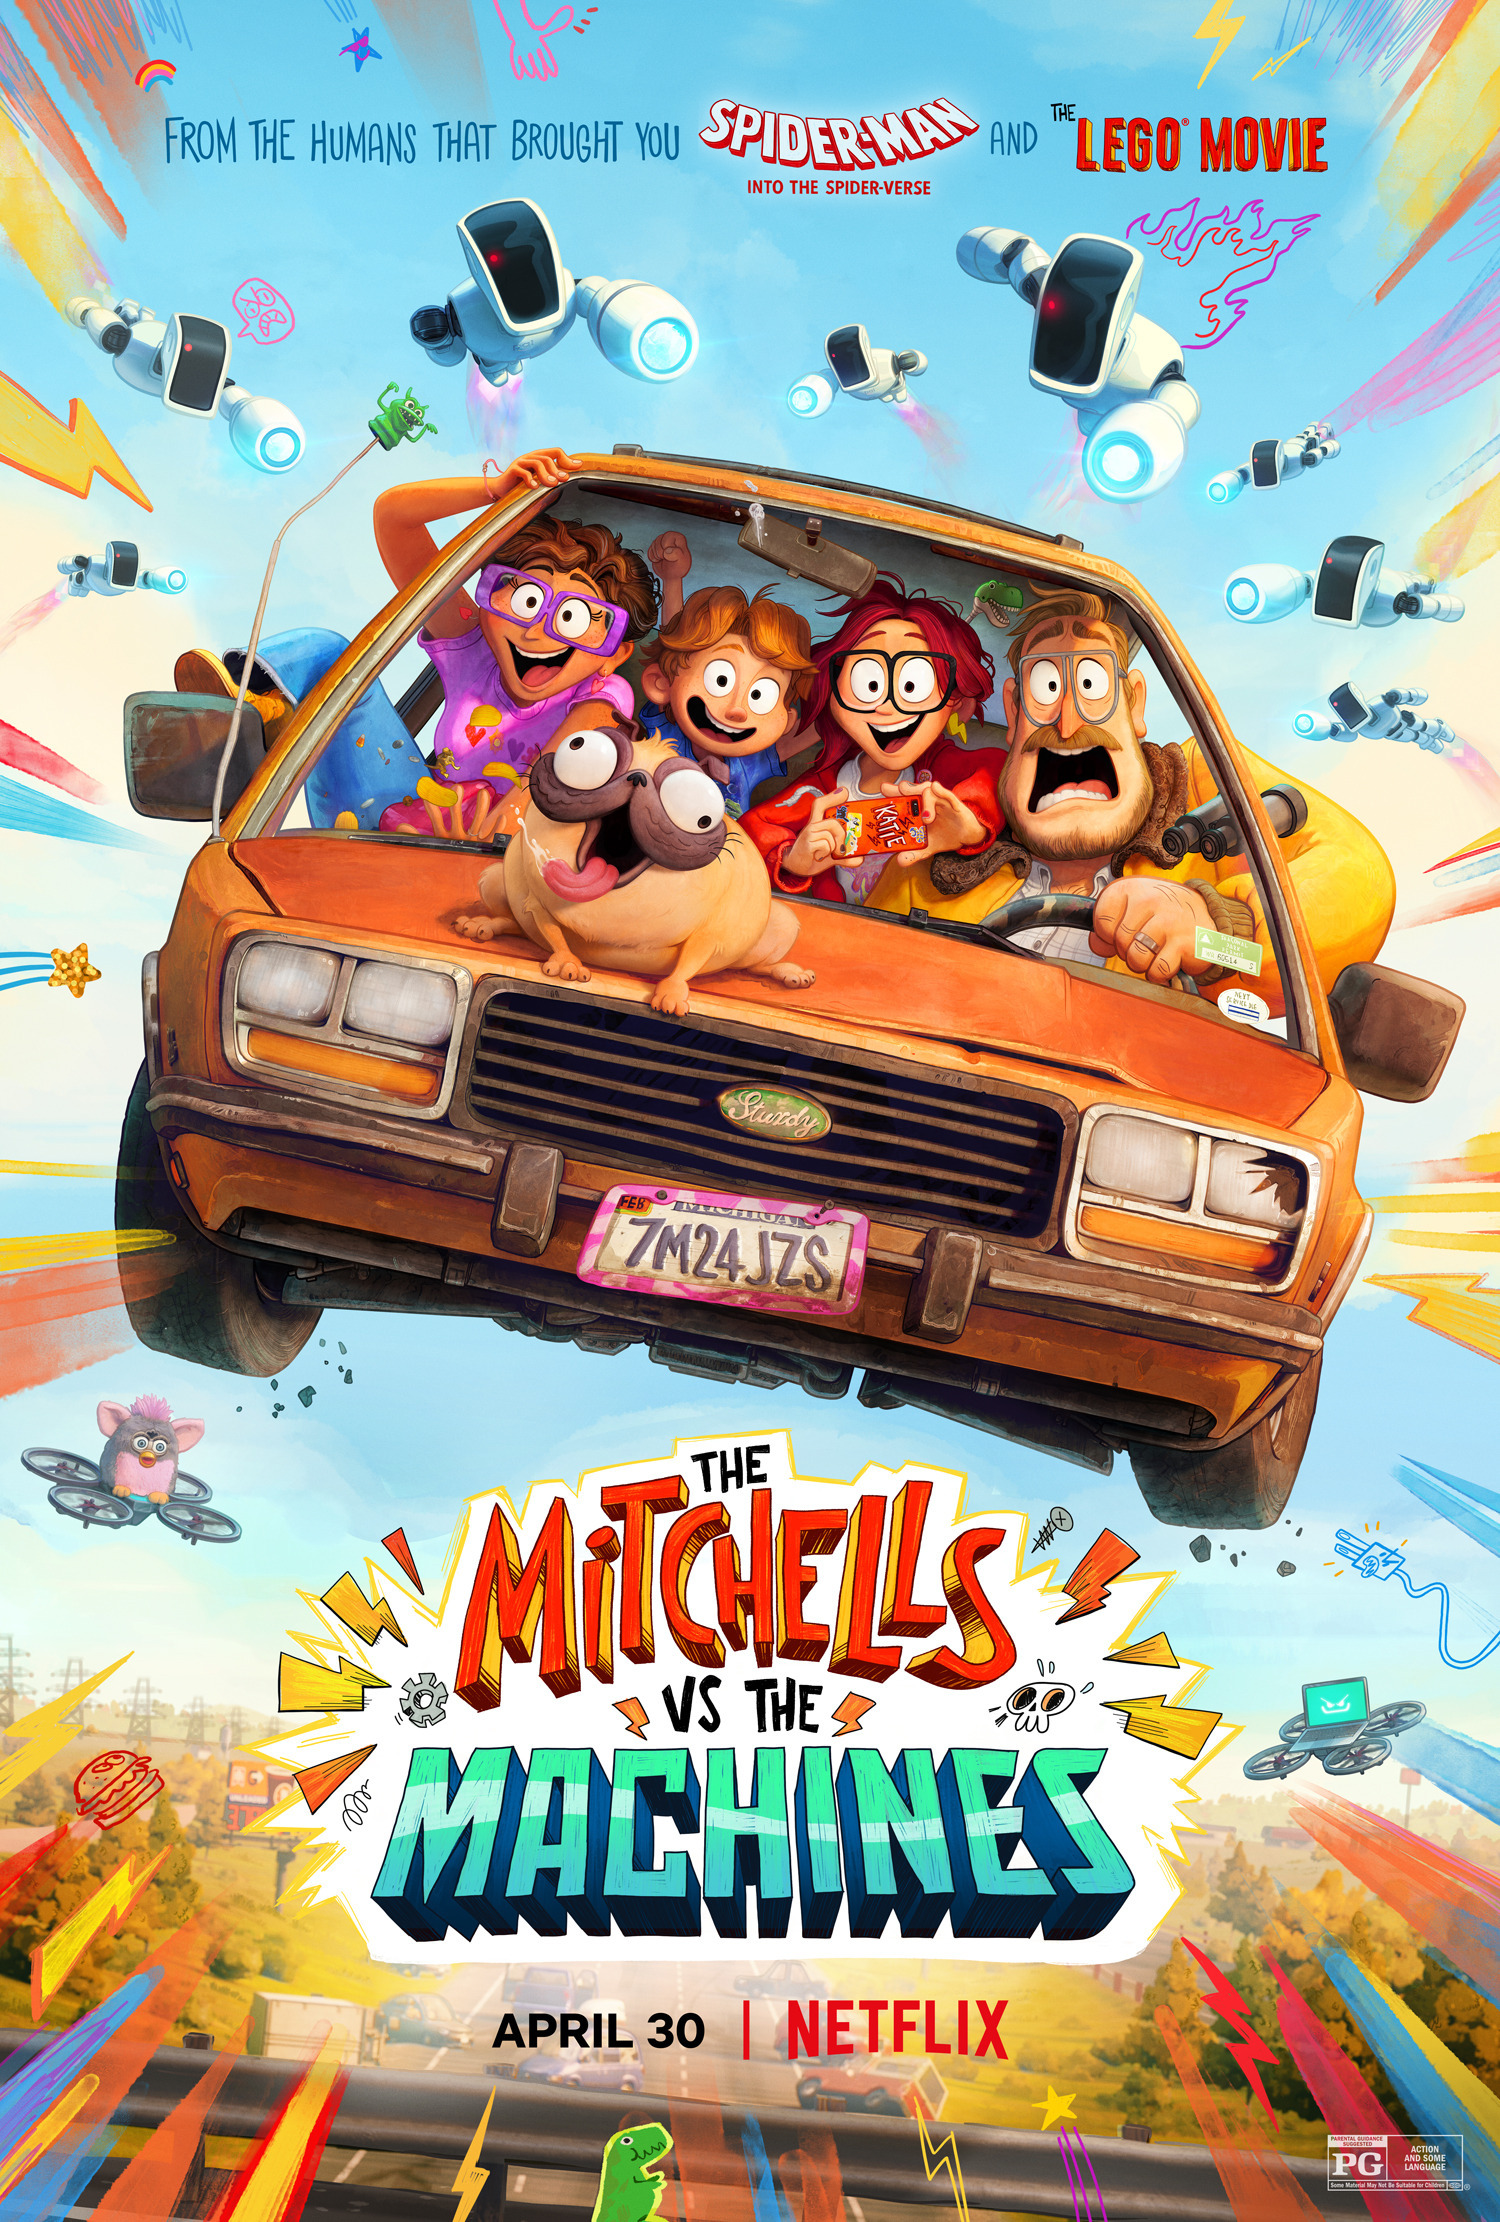 https://static.wikia.nocookie.net/sonypicturesanimation/images/d/d4/The_Mitchells_vs._The_Machines_poster.jpg